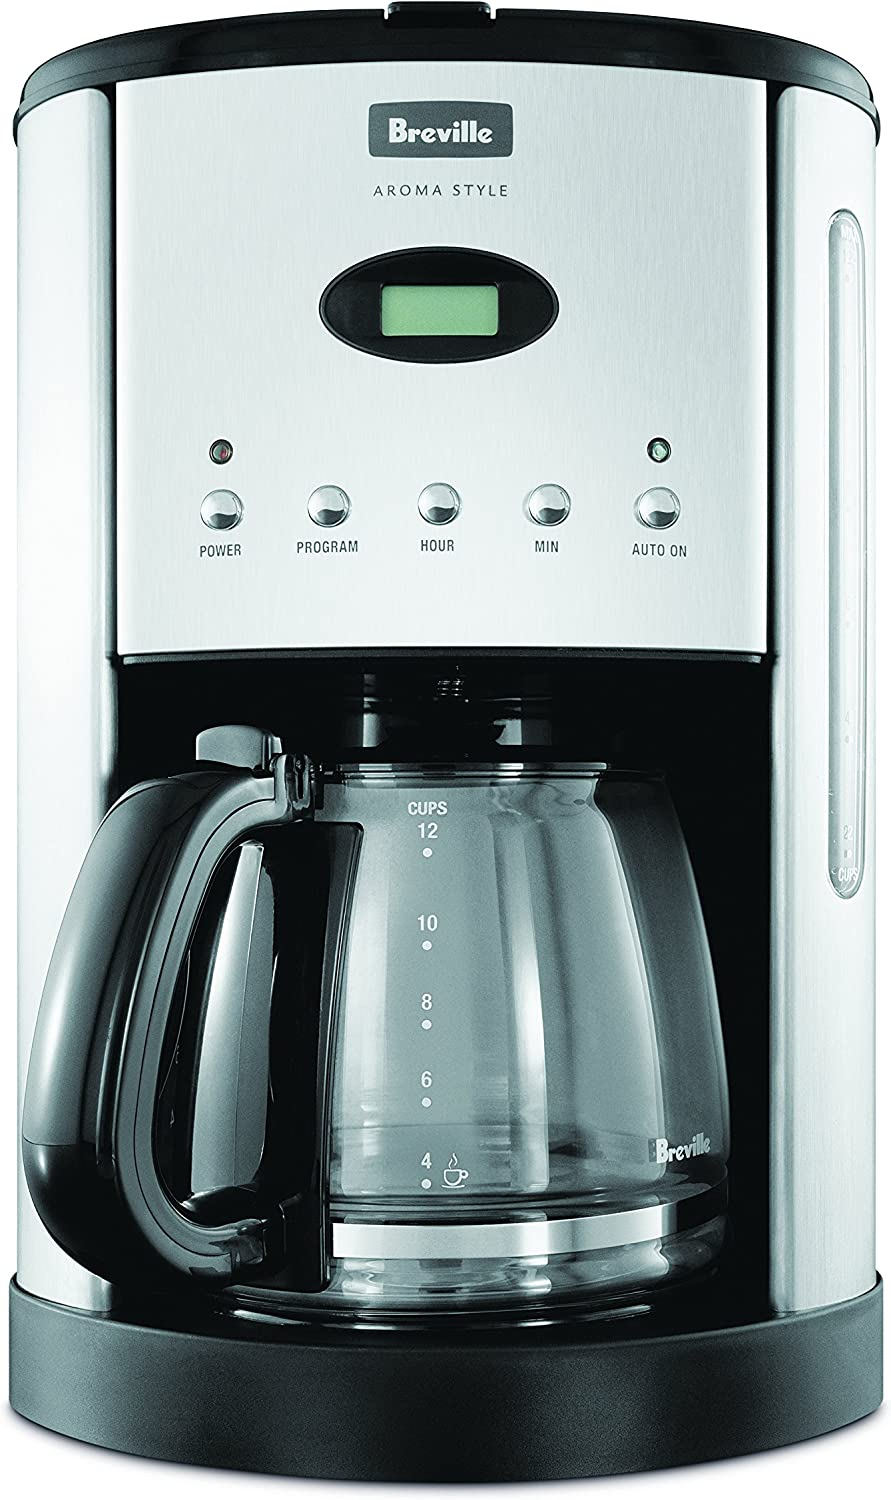 Breville Armoma Style Electronic